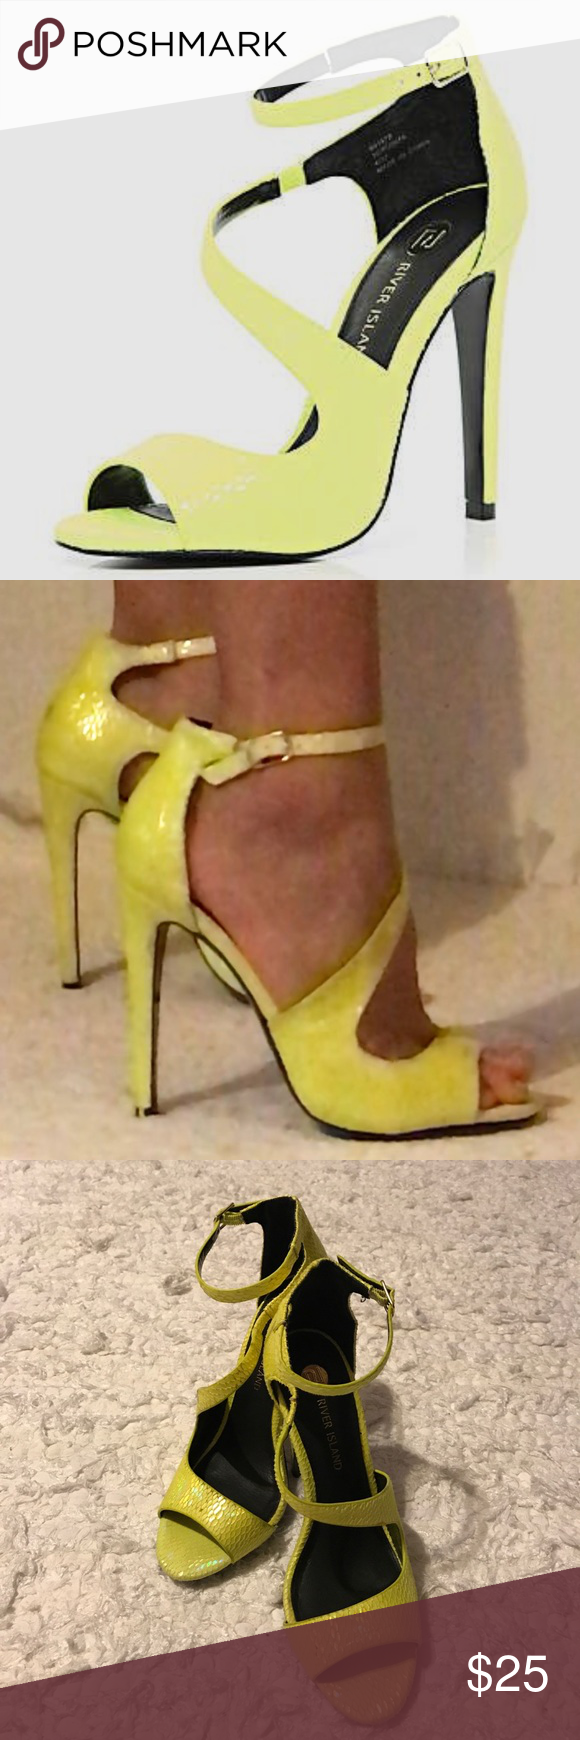 7beb3bc83c River Island Yellow Asymmetric Sandals Gently used River Island stunning  bright yellow asymmetric stiletto sandals. 4.2 inch heel. Size 8.